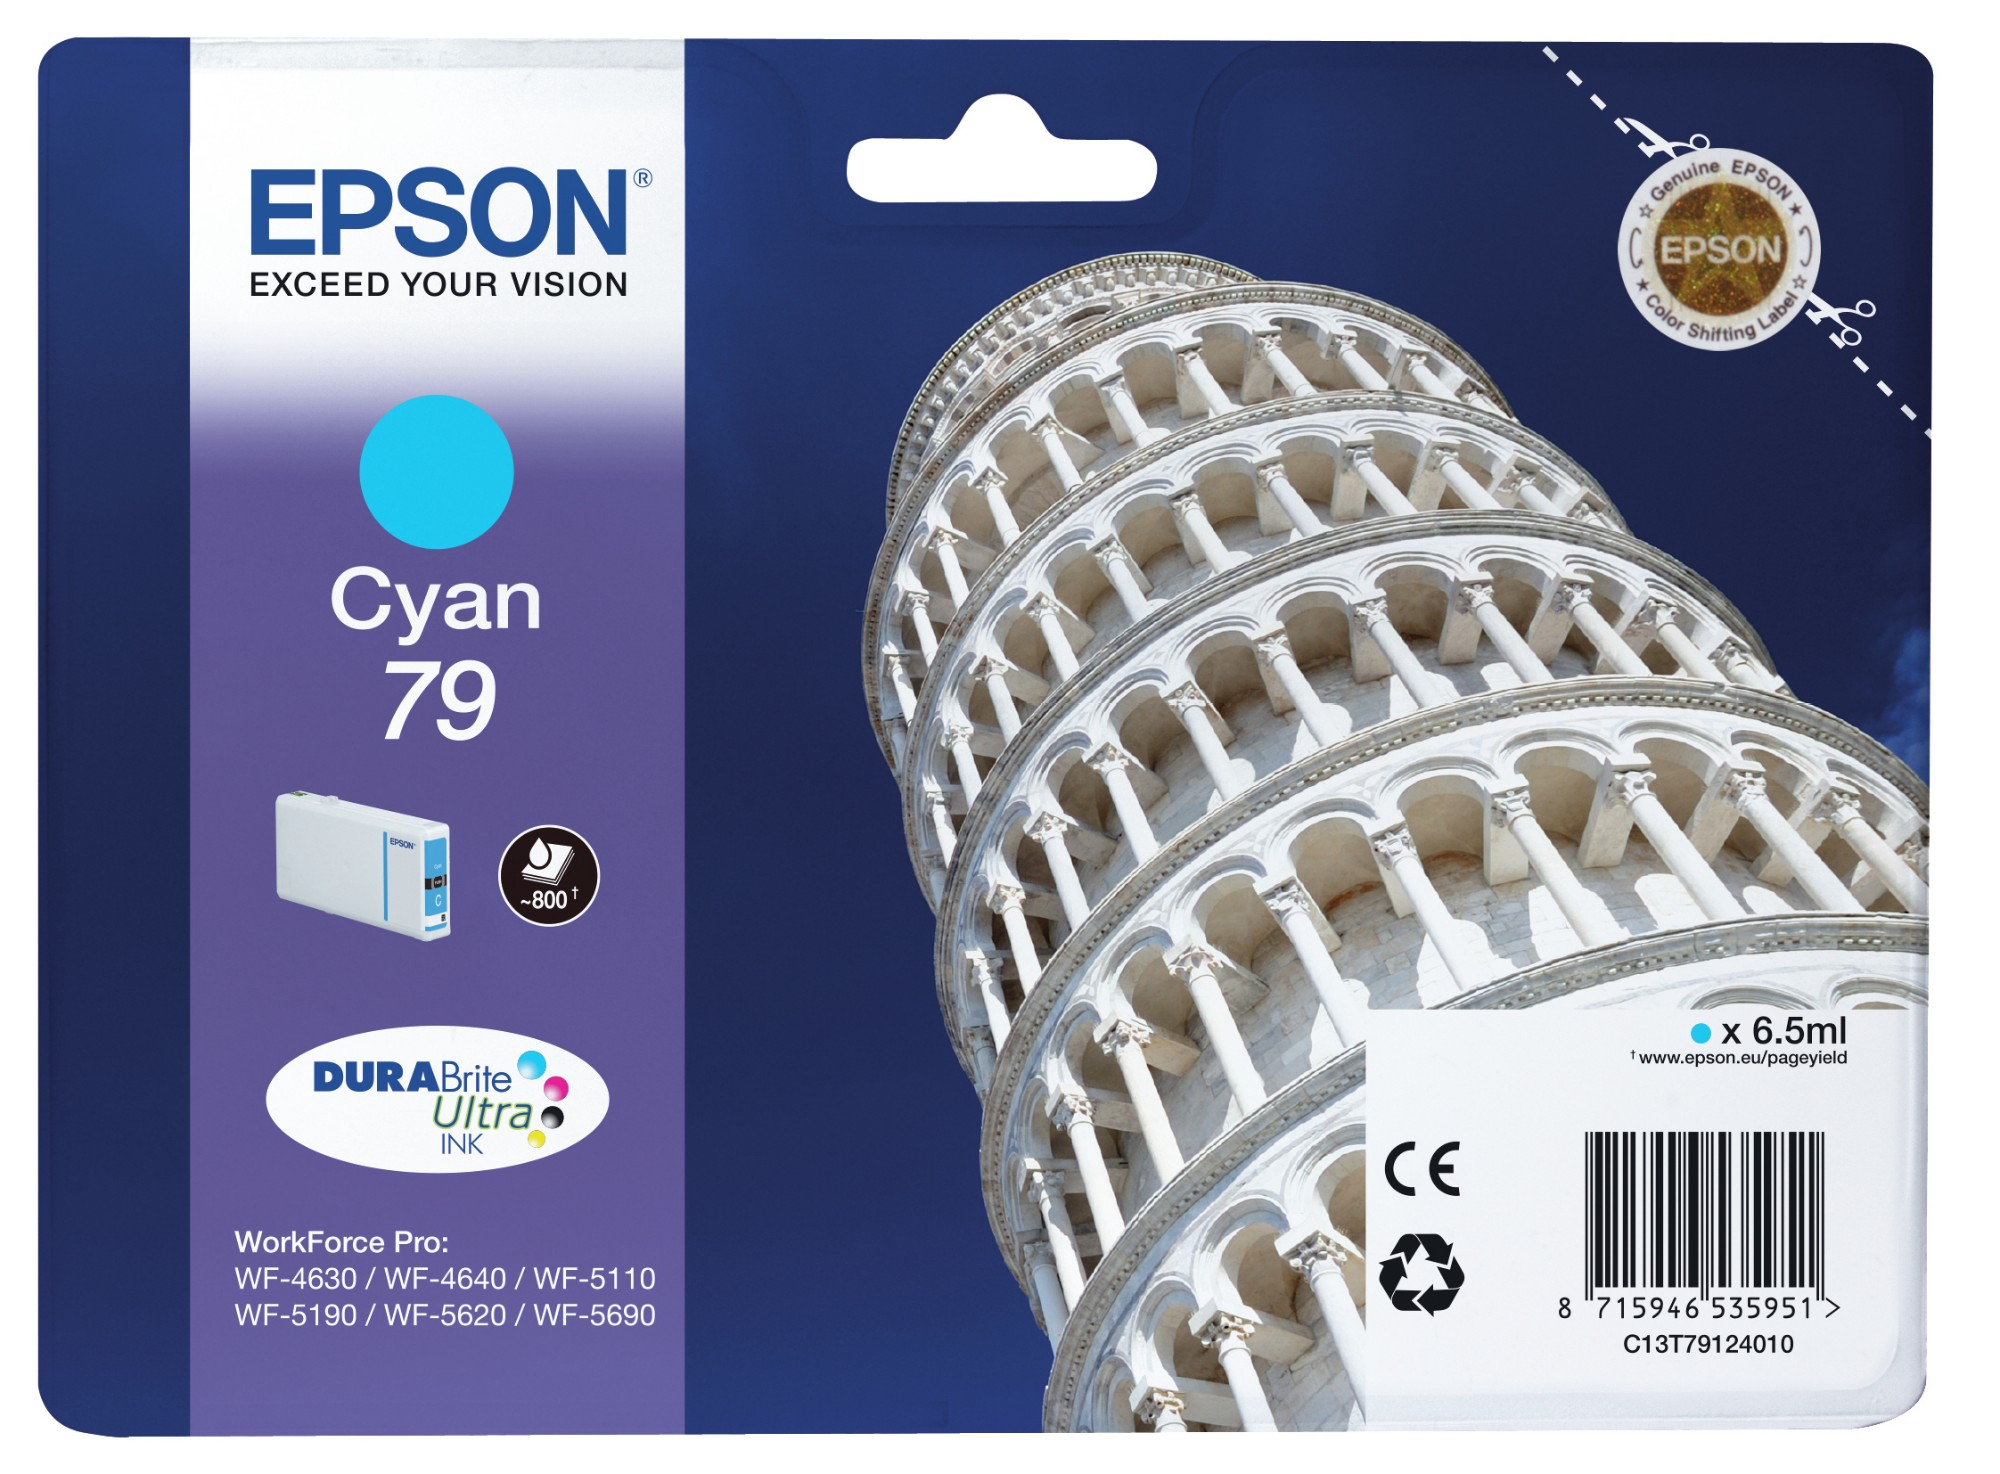 Epson Tower of Pisa Cartucho 79 cian